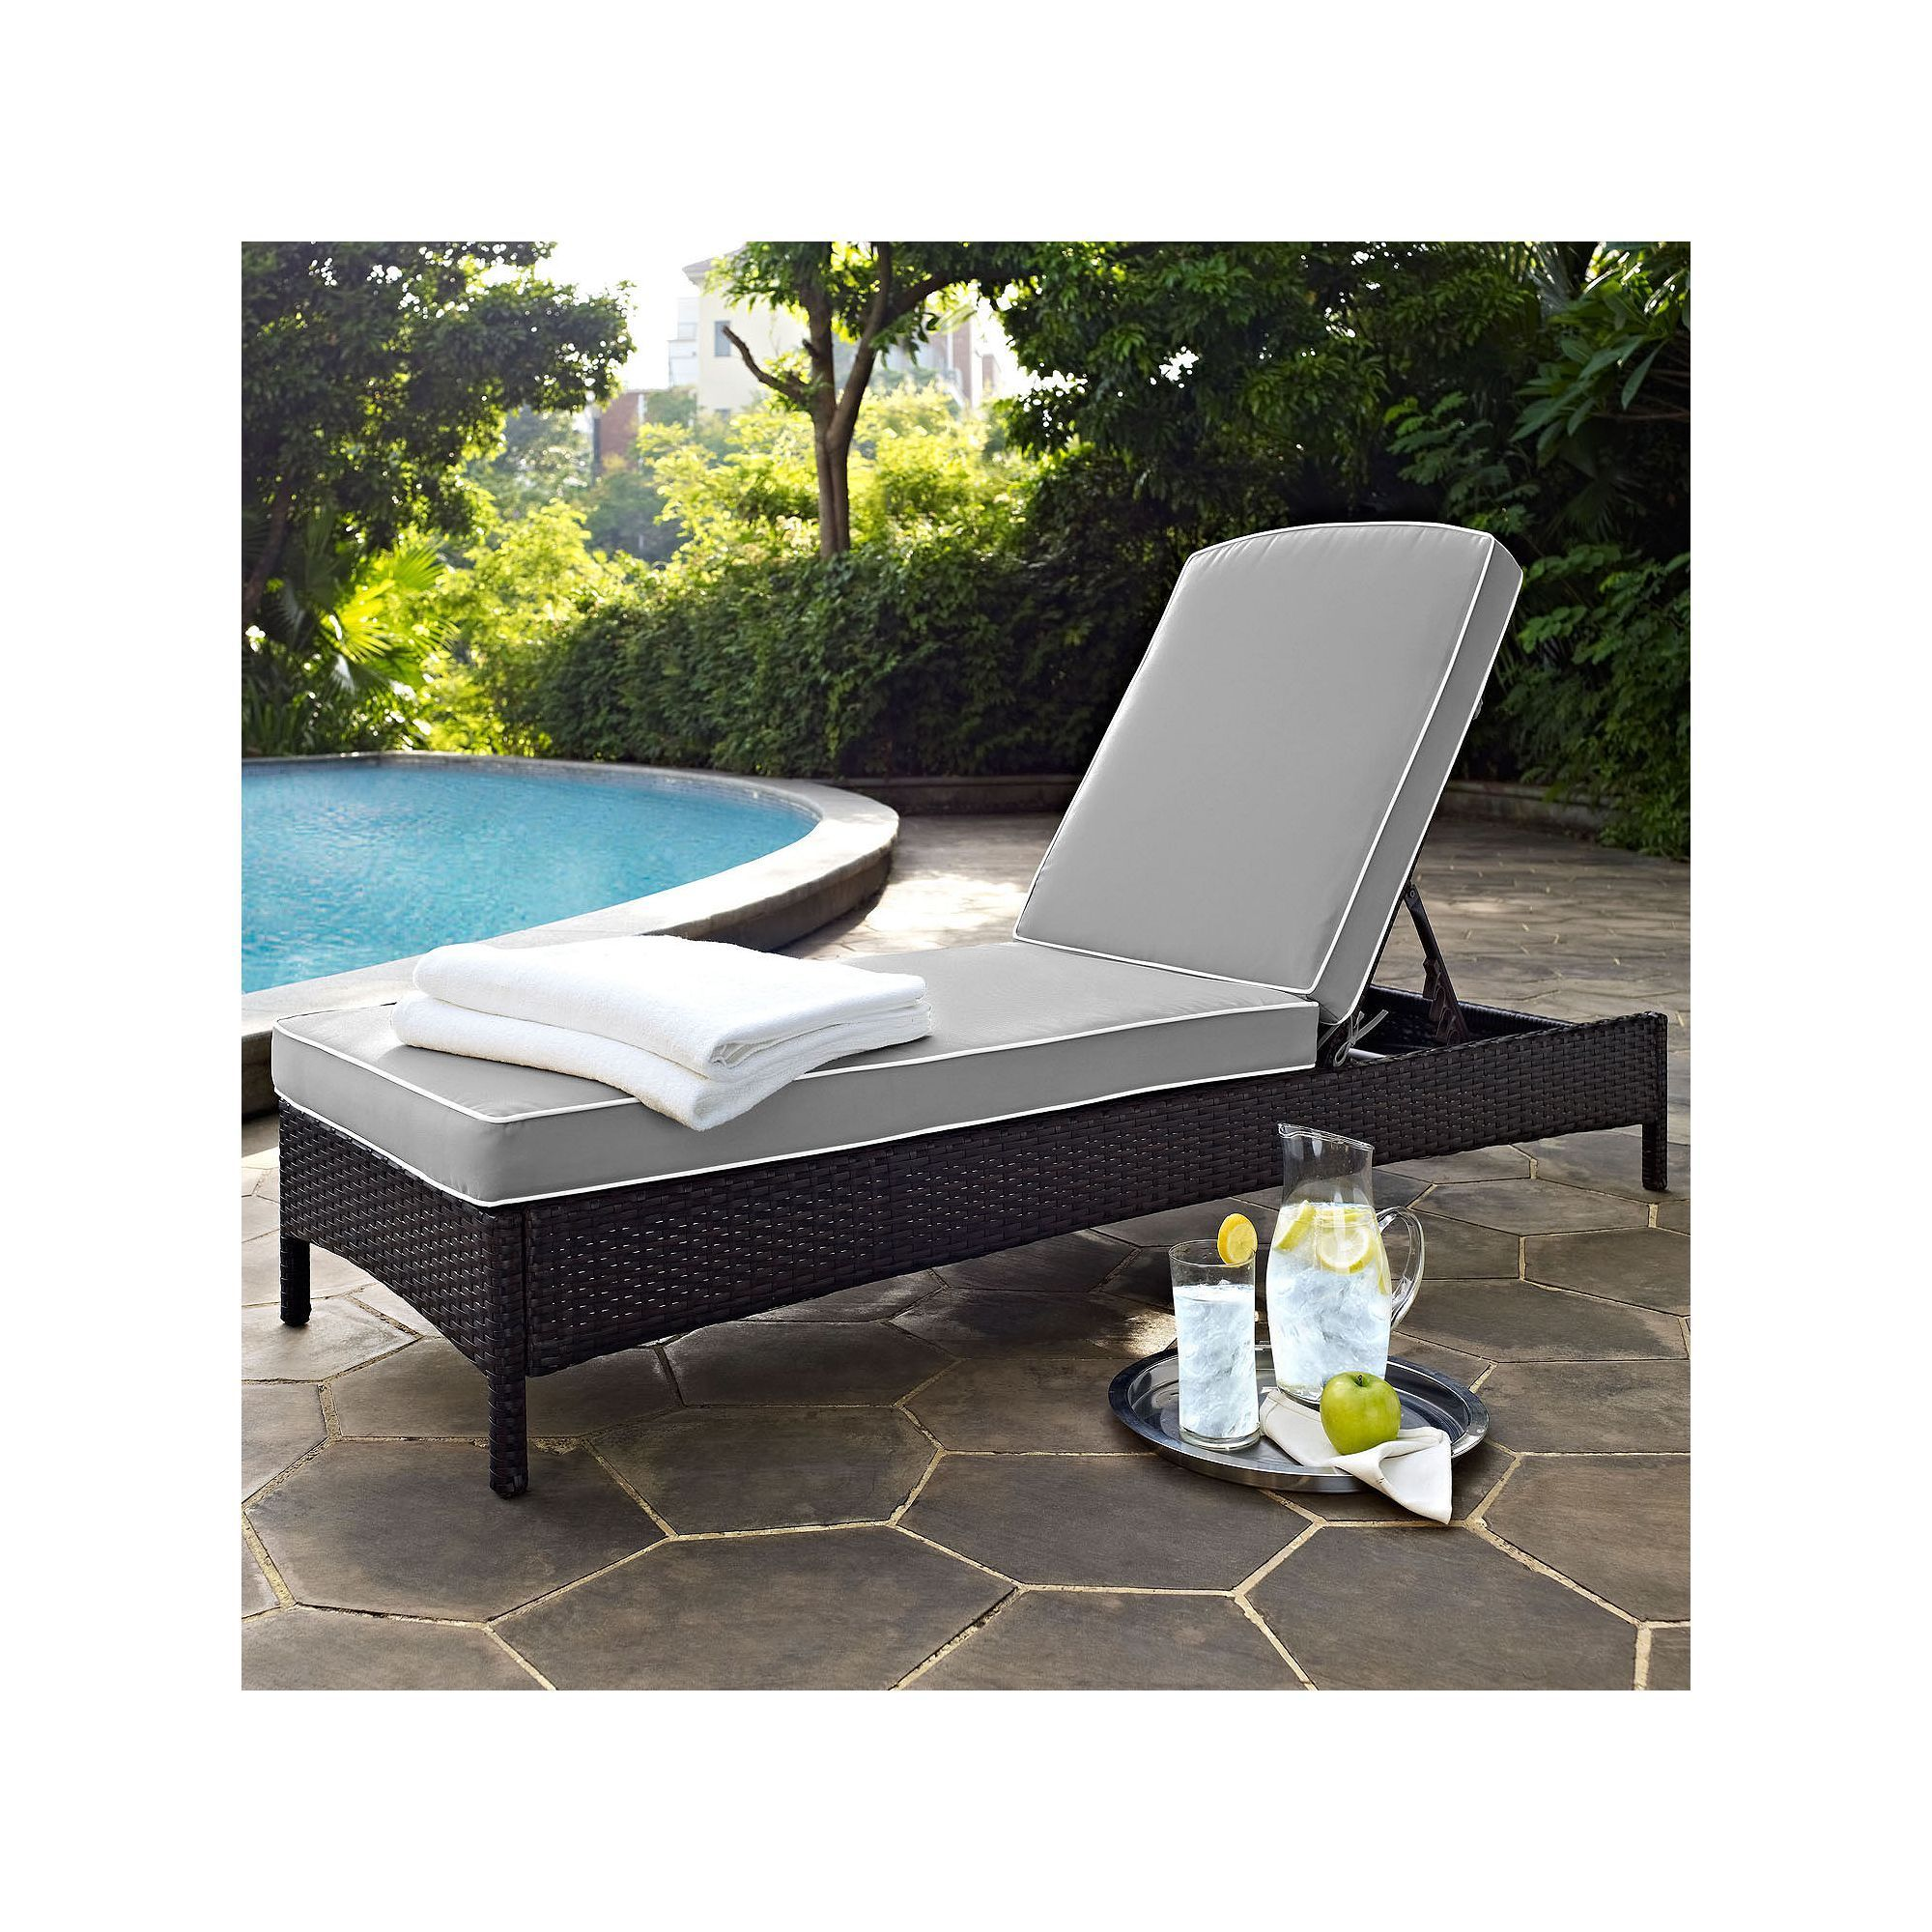 Outdoor Crosley Furniture Palm Harbor Patio Chaise Lounge Chair